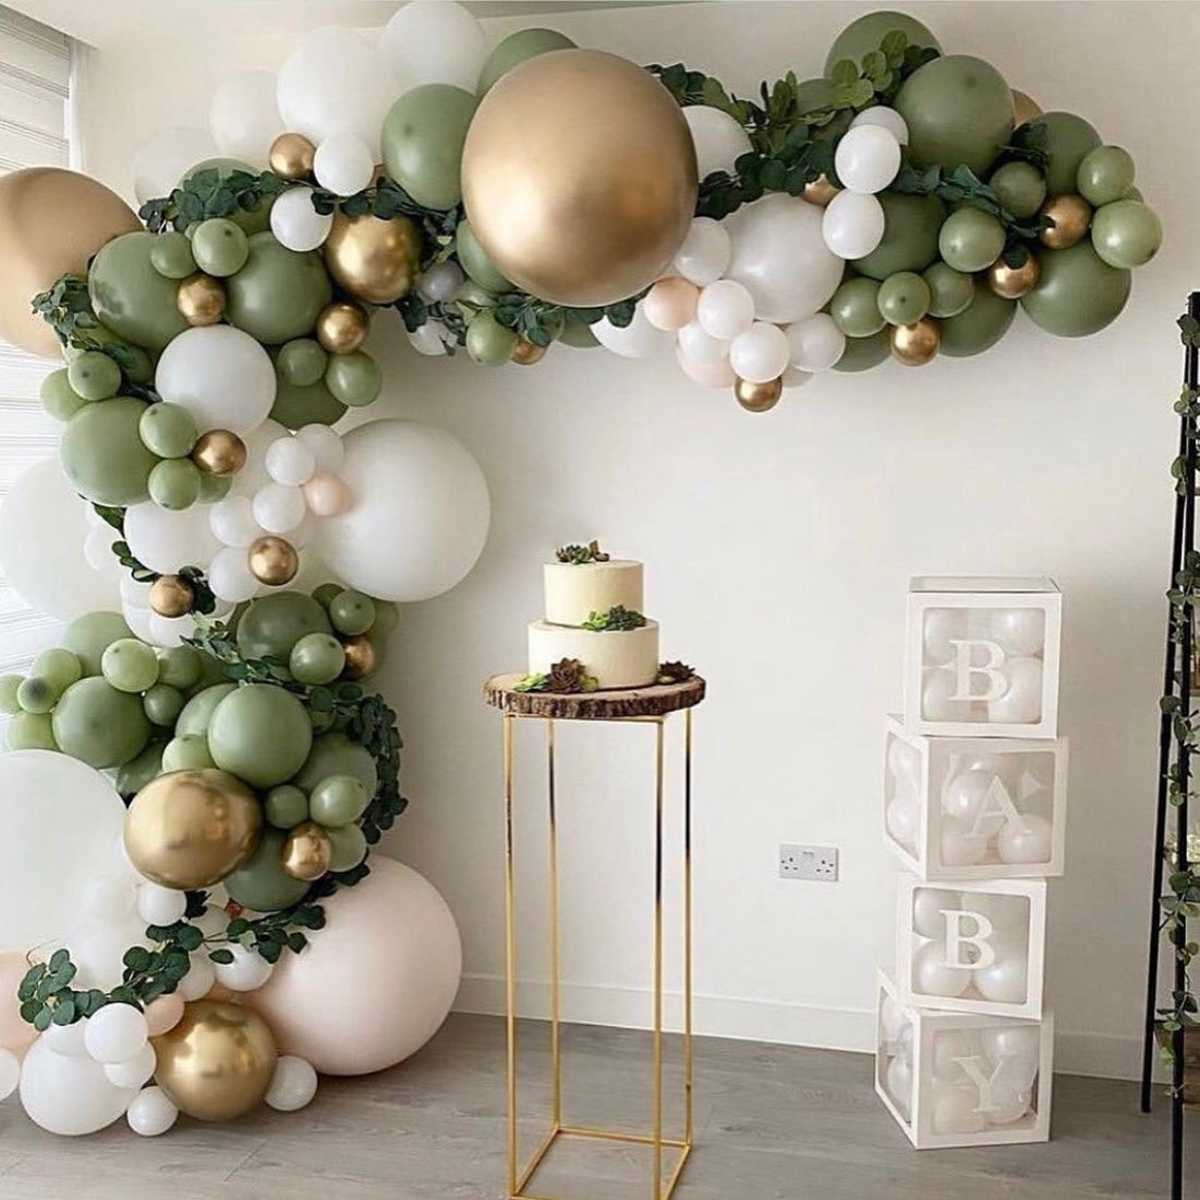 152pcs Green Silver Macaron Metal Balloon Garland Arch Wedding Birthday Balloons Decoration Party Balloons For Kids Baby Shower